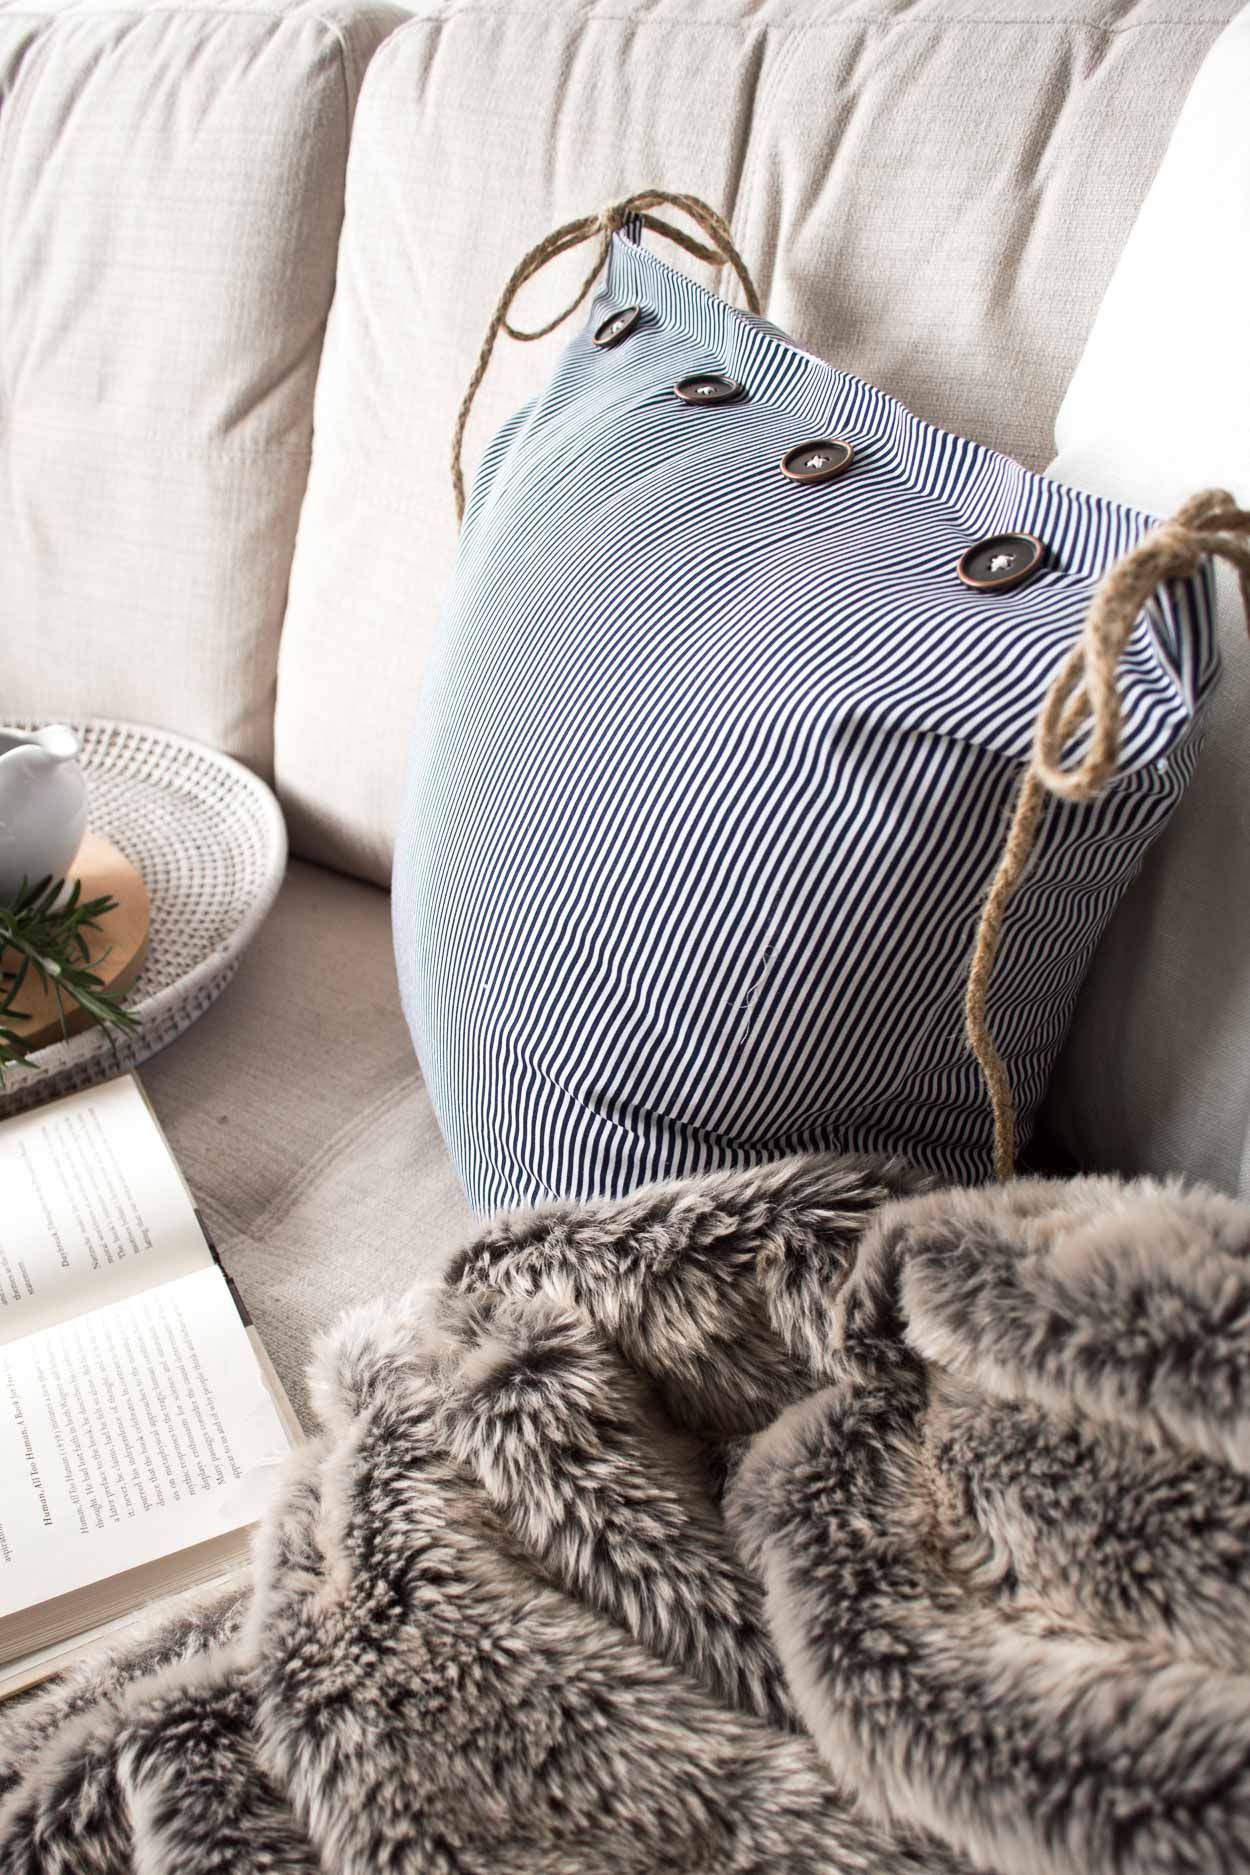 How To Make A Pretty No Sew Removable Cushion Cover Diy Cushion